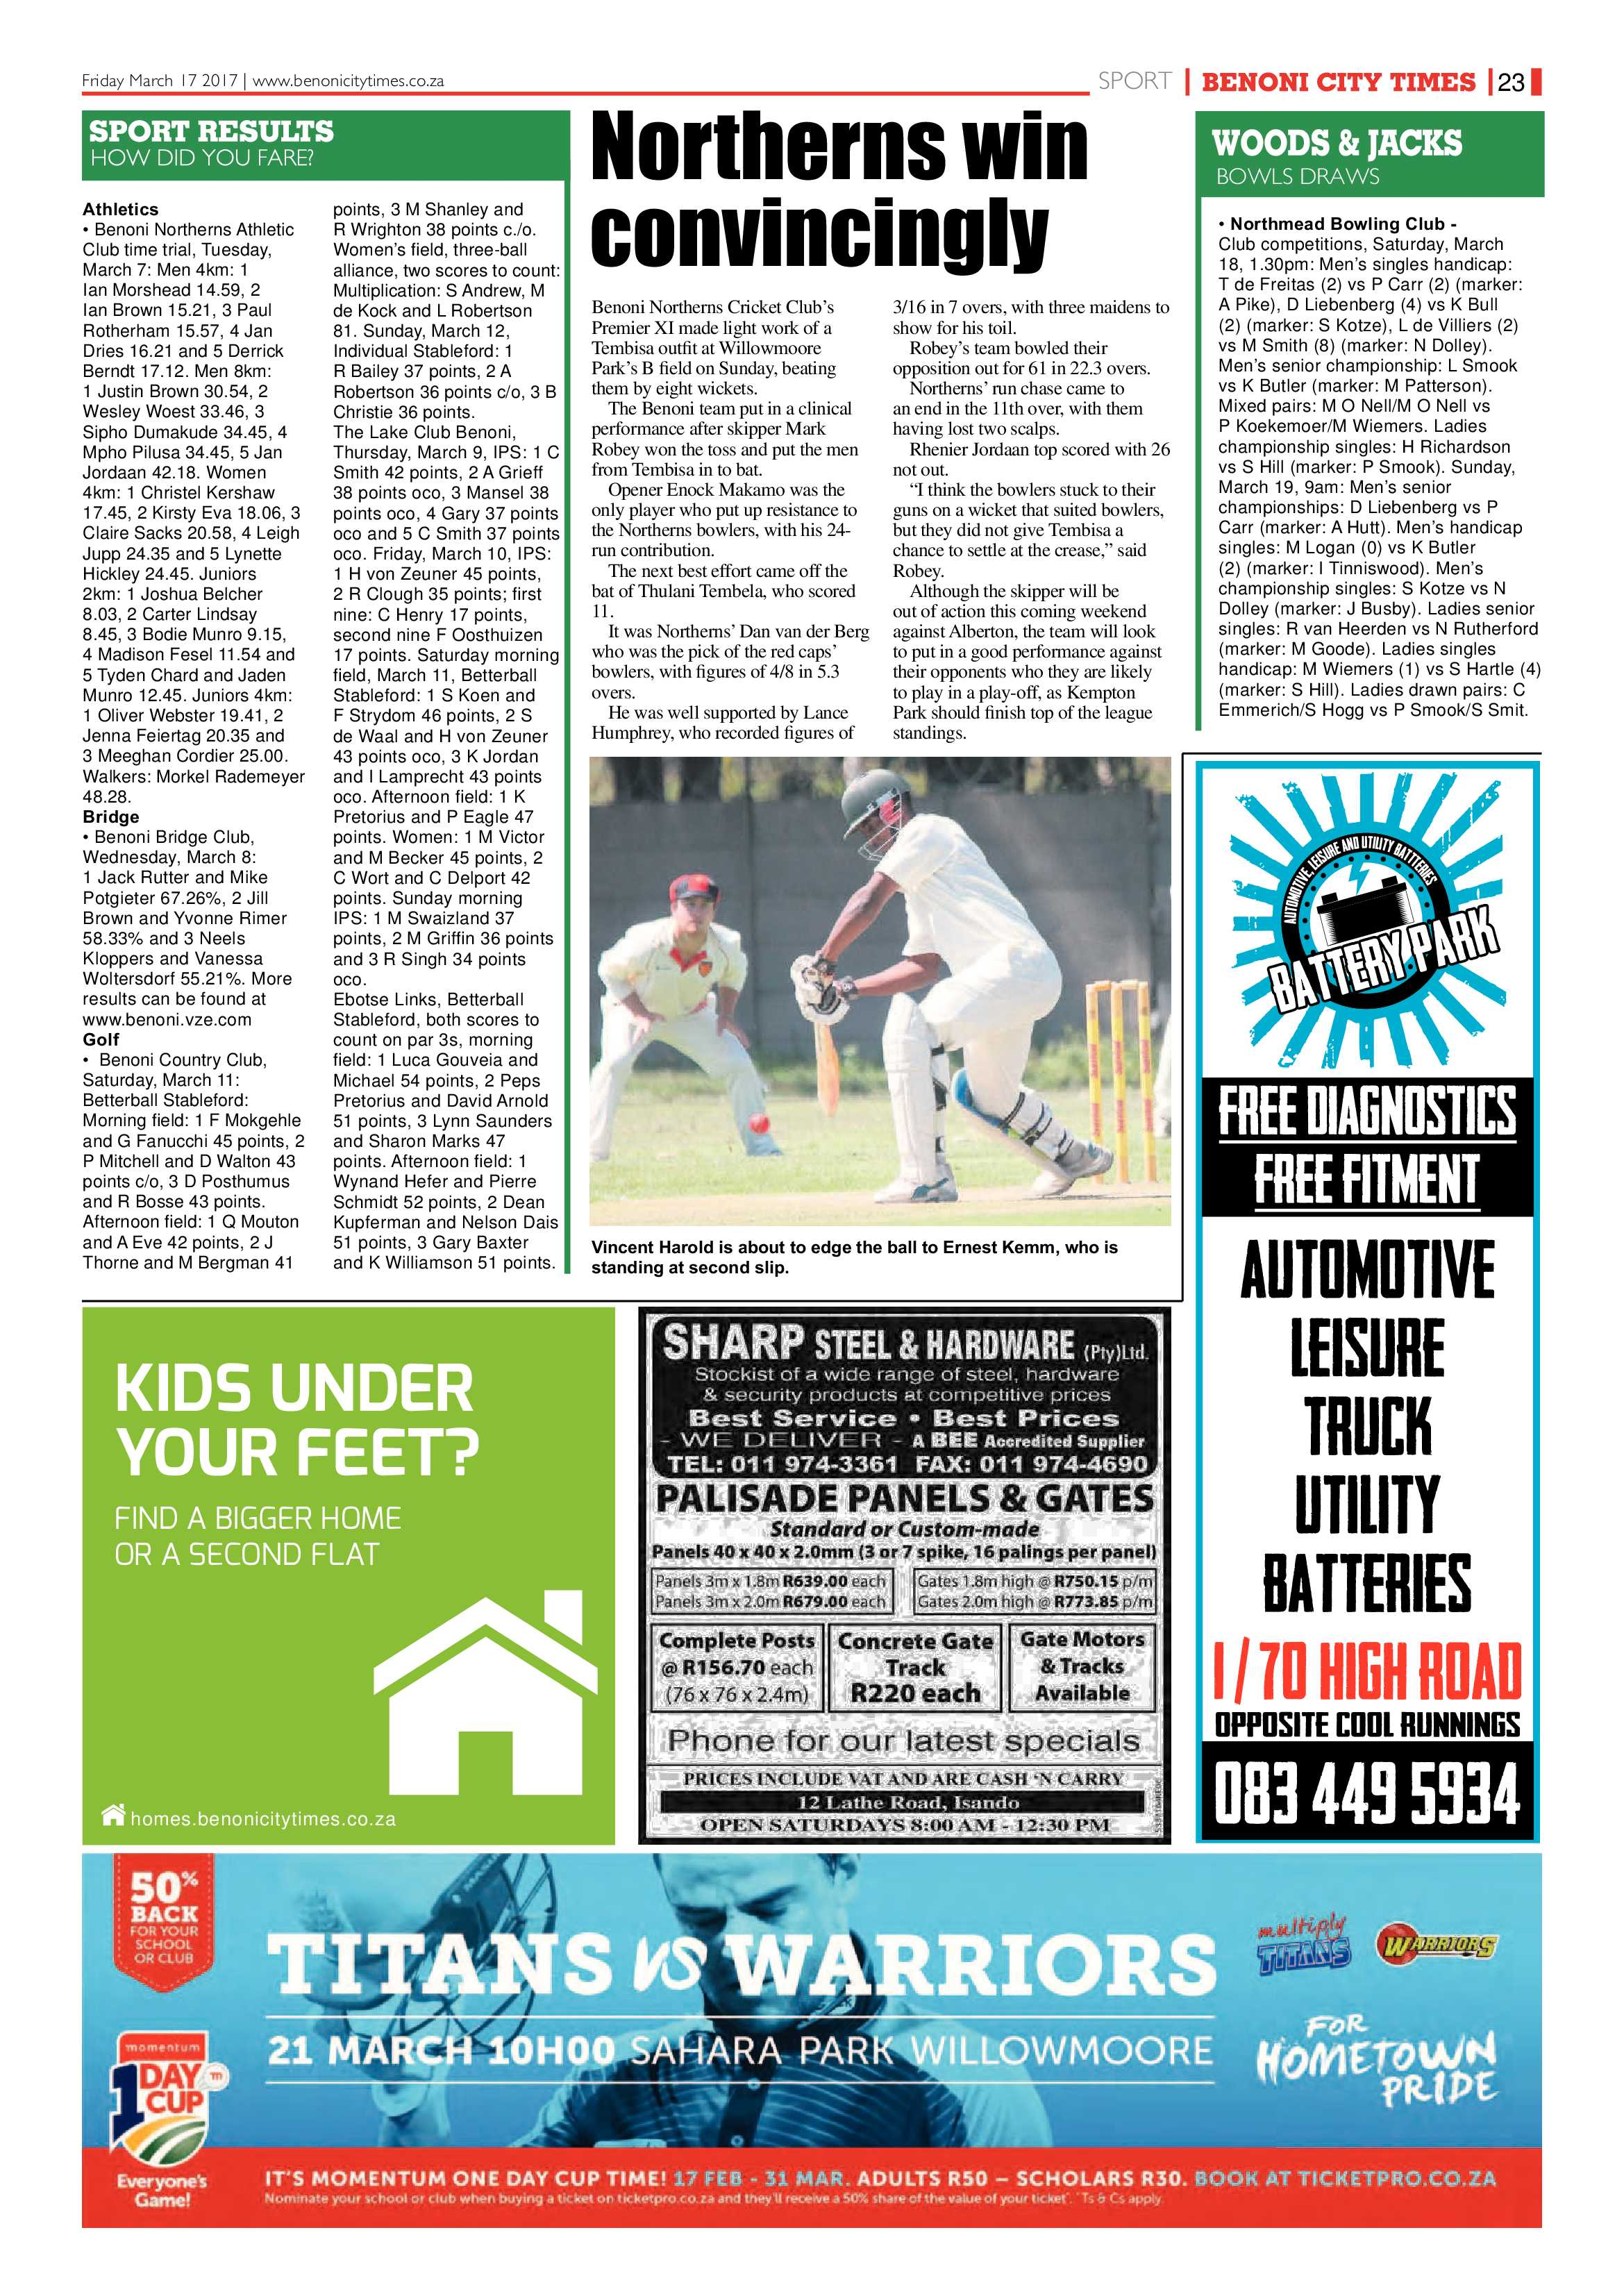 benoni-city-times-16-march-2017-epapers-page-23